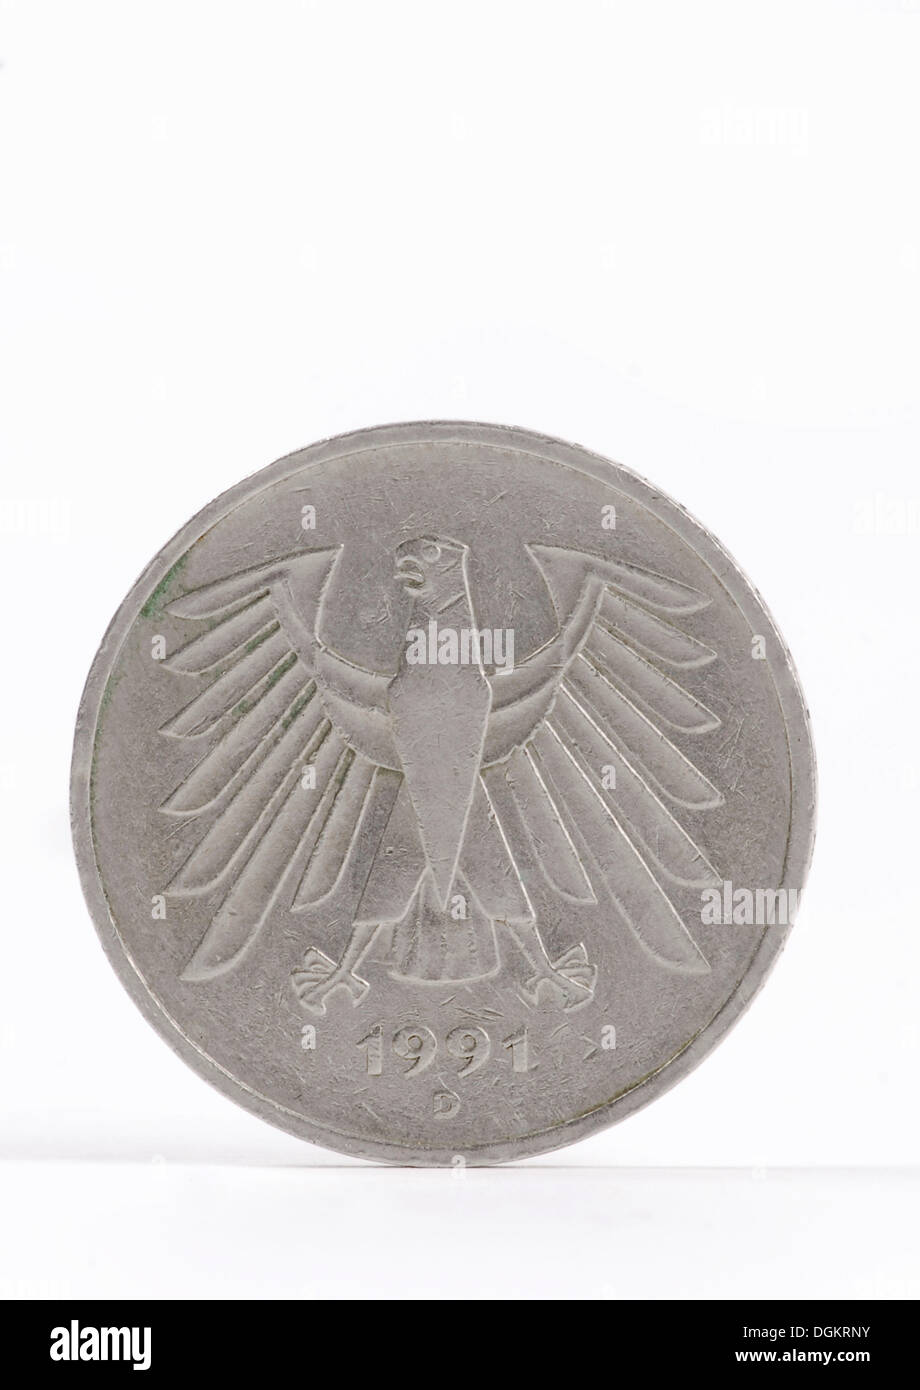 5 German Mark, coin with Federal Eagle - Stock Image